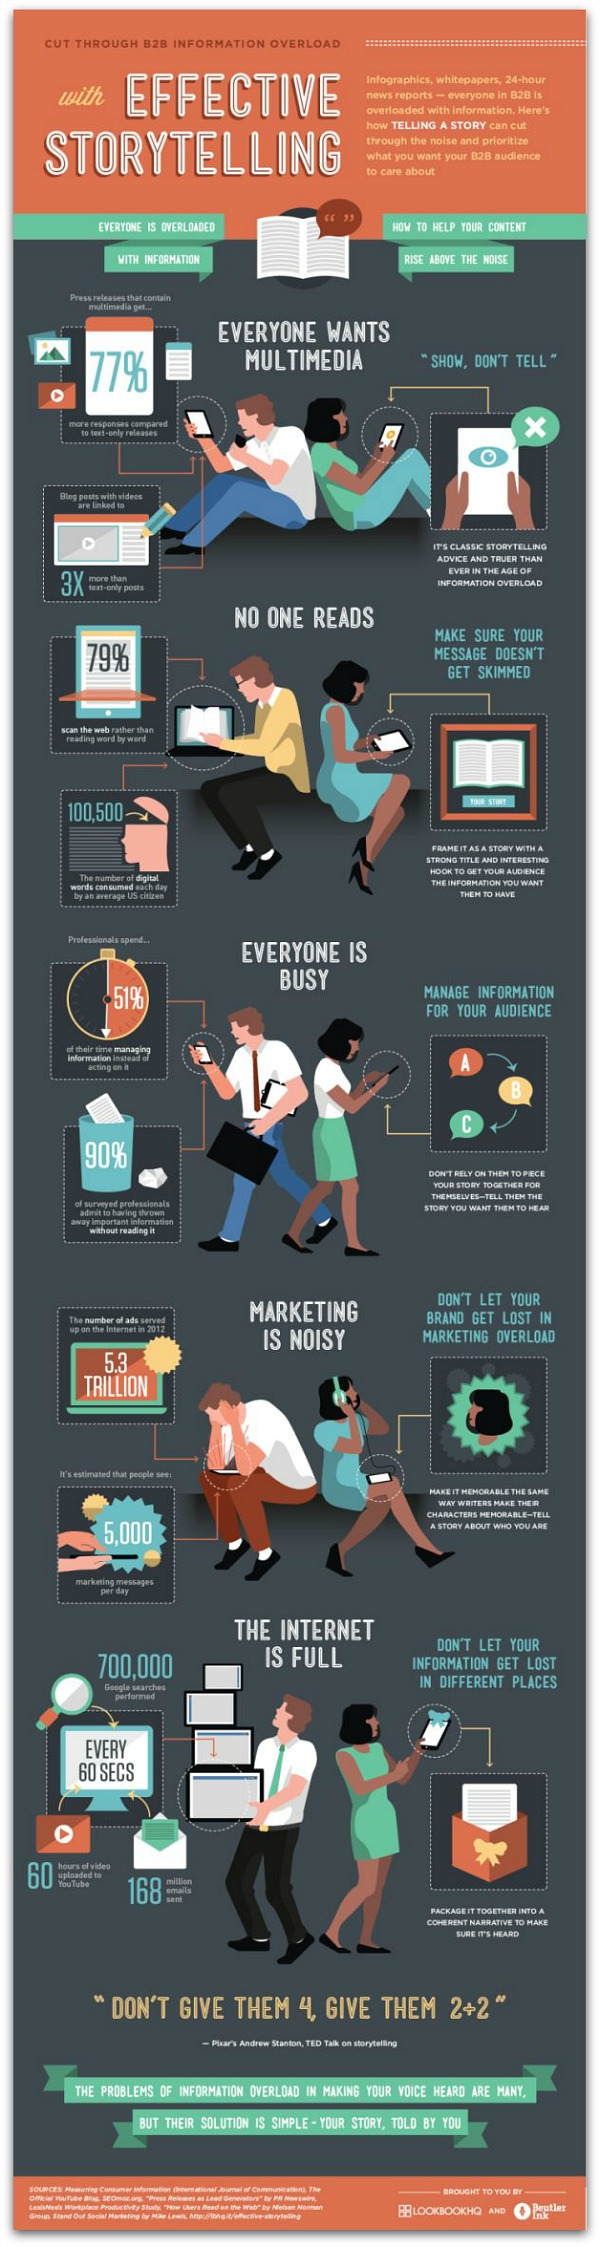 Effective_Storytelling_Infographic